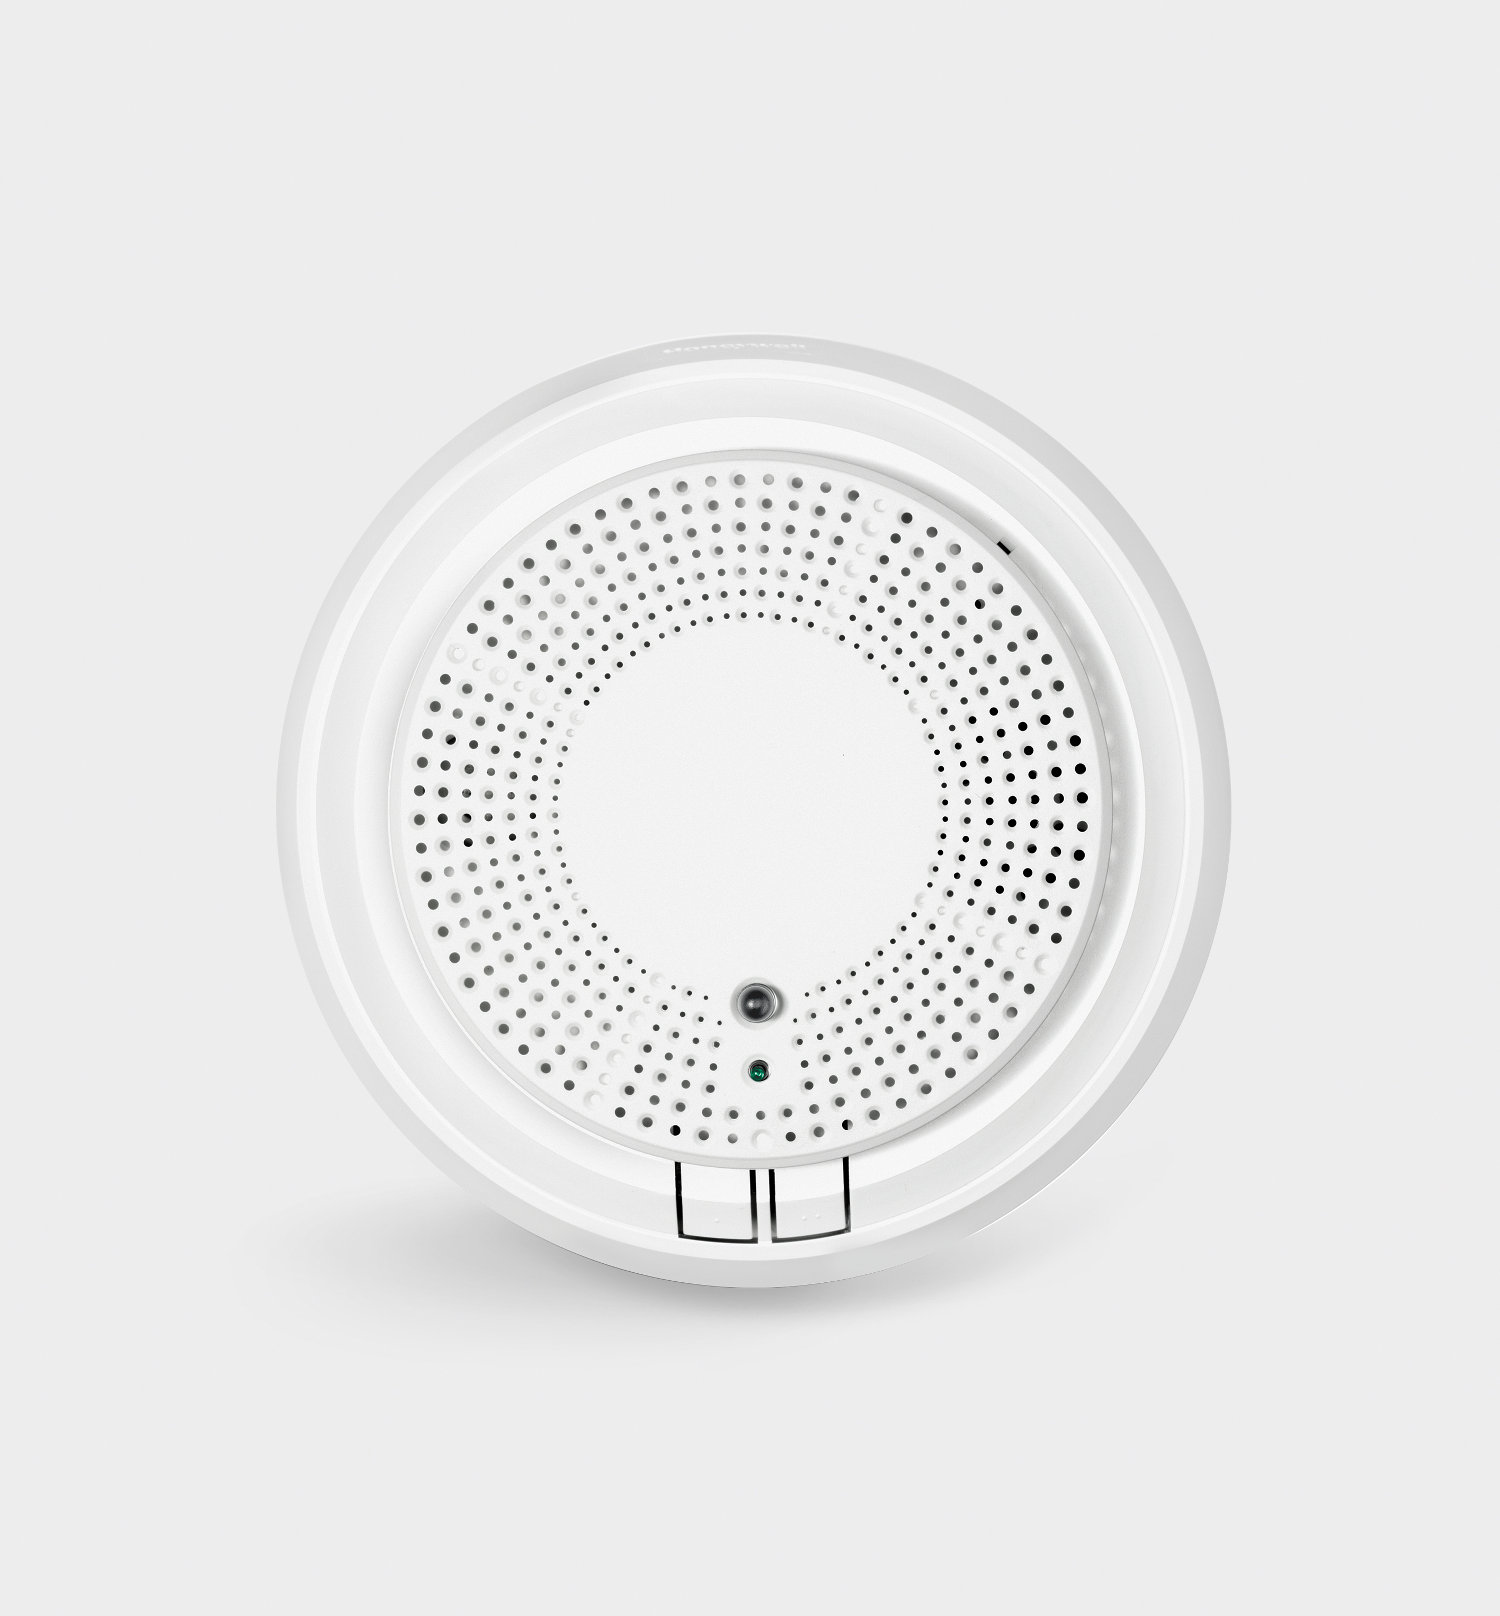 honeywell releases wireless combination smoke and carbon monoxide detector electronic house. Black Bedroom Furniture Sets. Home Design Ideas